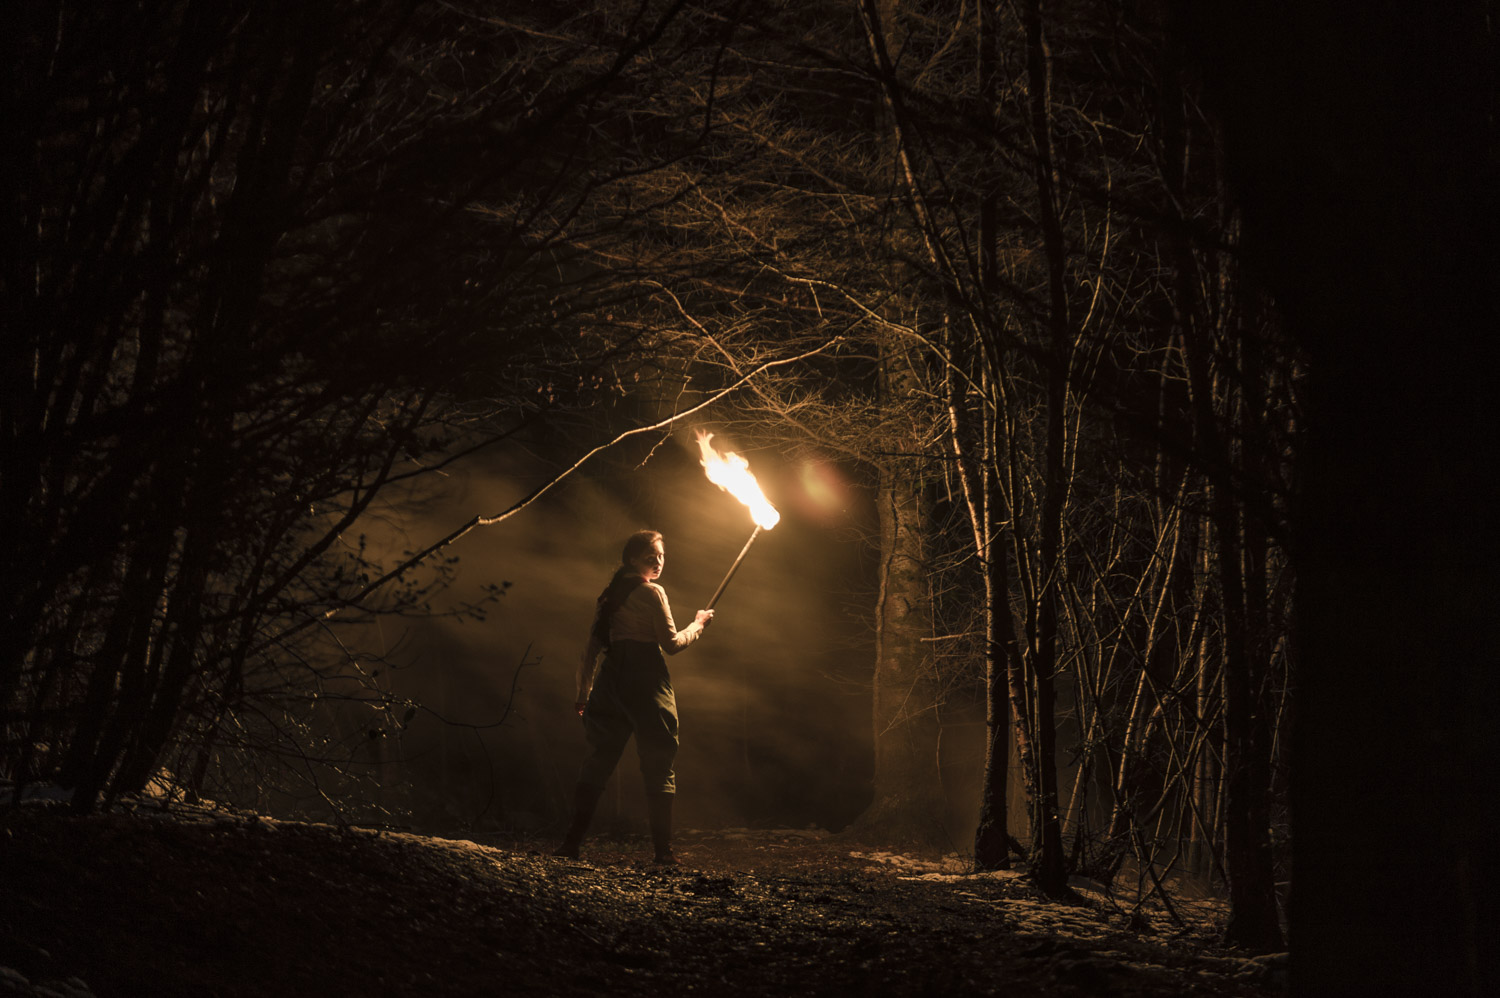 Photo by Theo Moye 21/03/18 Burn the Curtain's Hunting the Snark promo/press photos at Haldon Forest Park, Exeter.